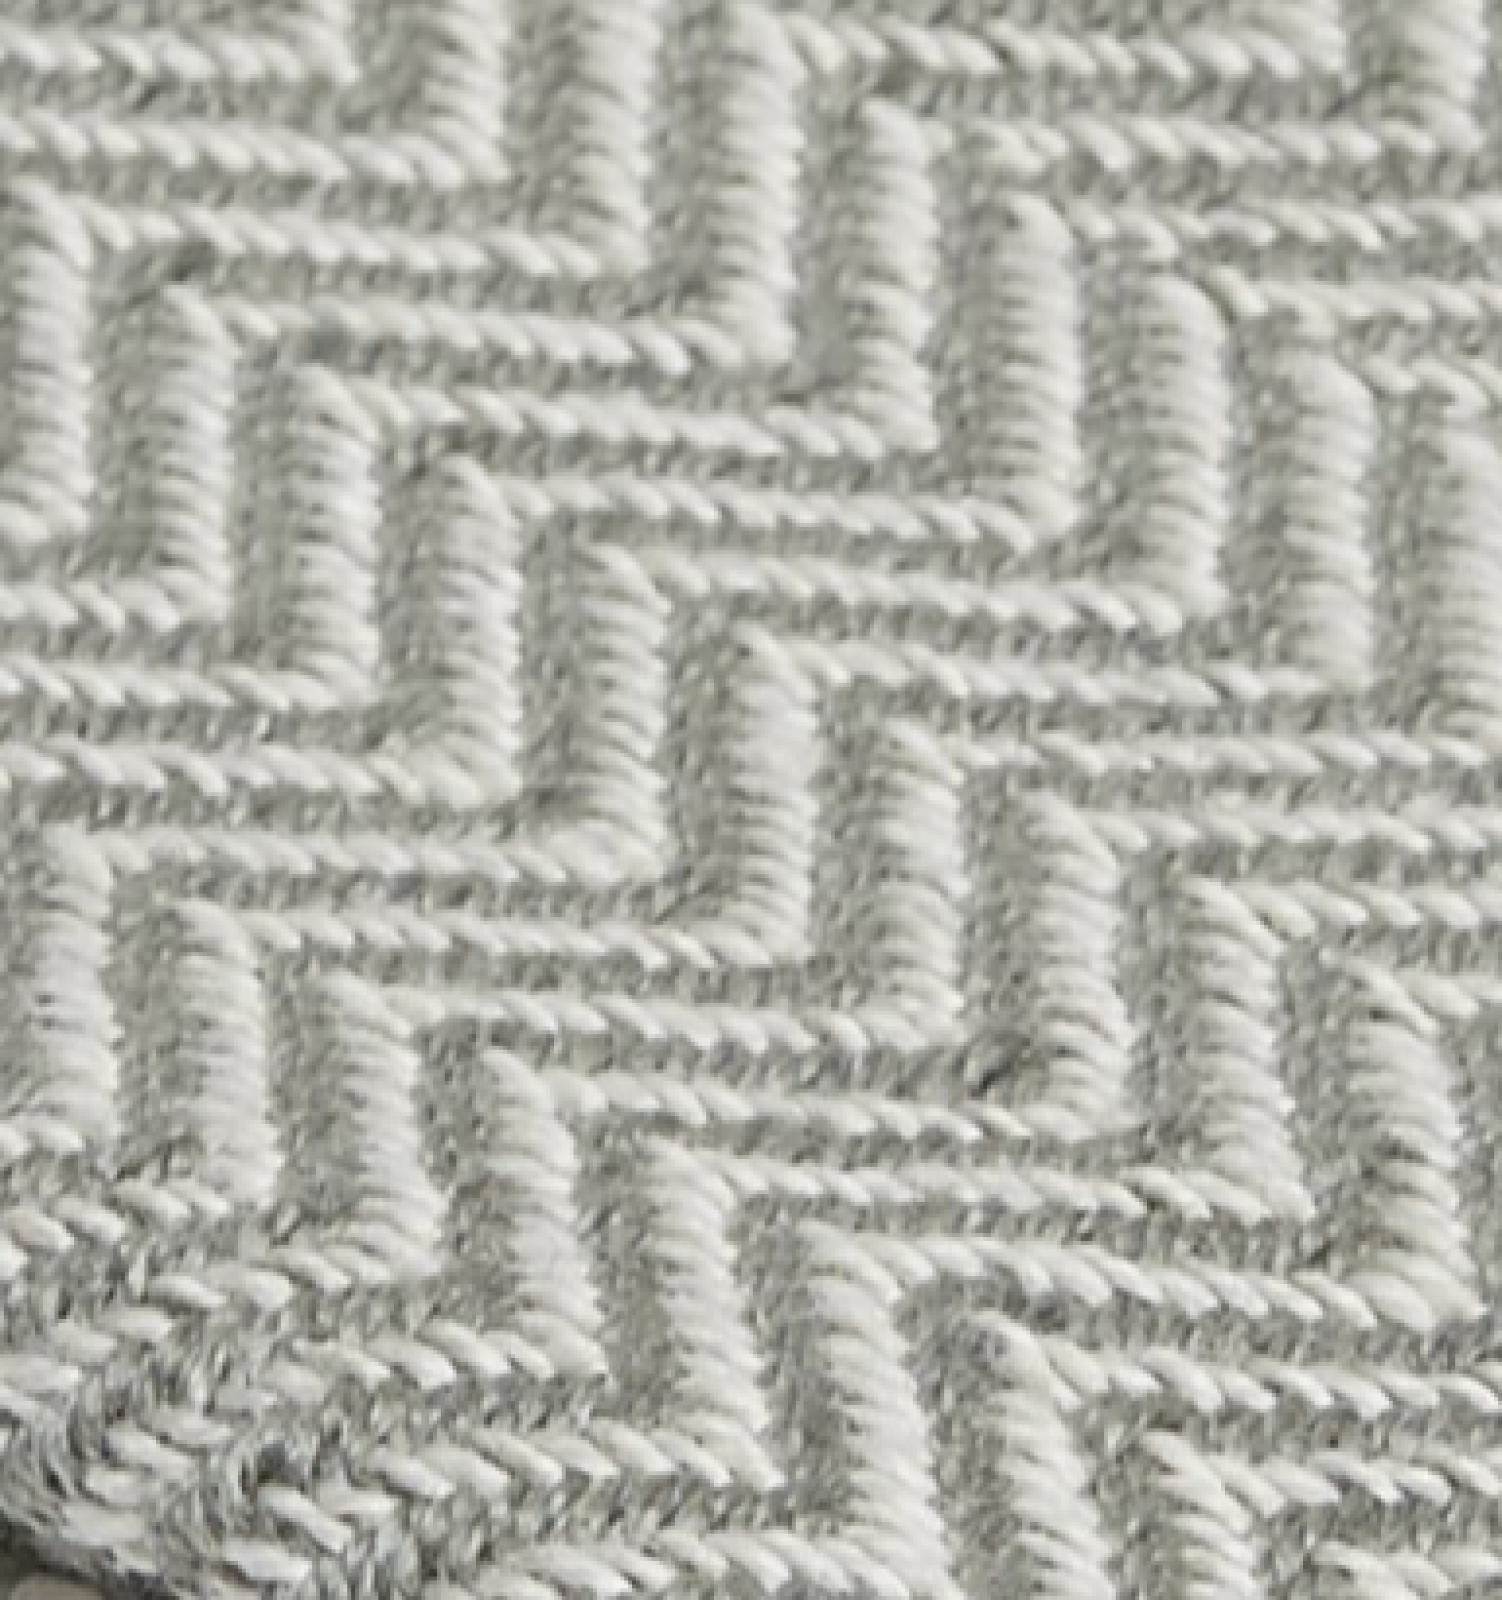 Grey Herringbone Blanket From Recycled Bottles thumbnails